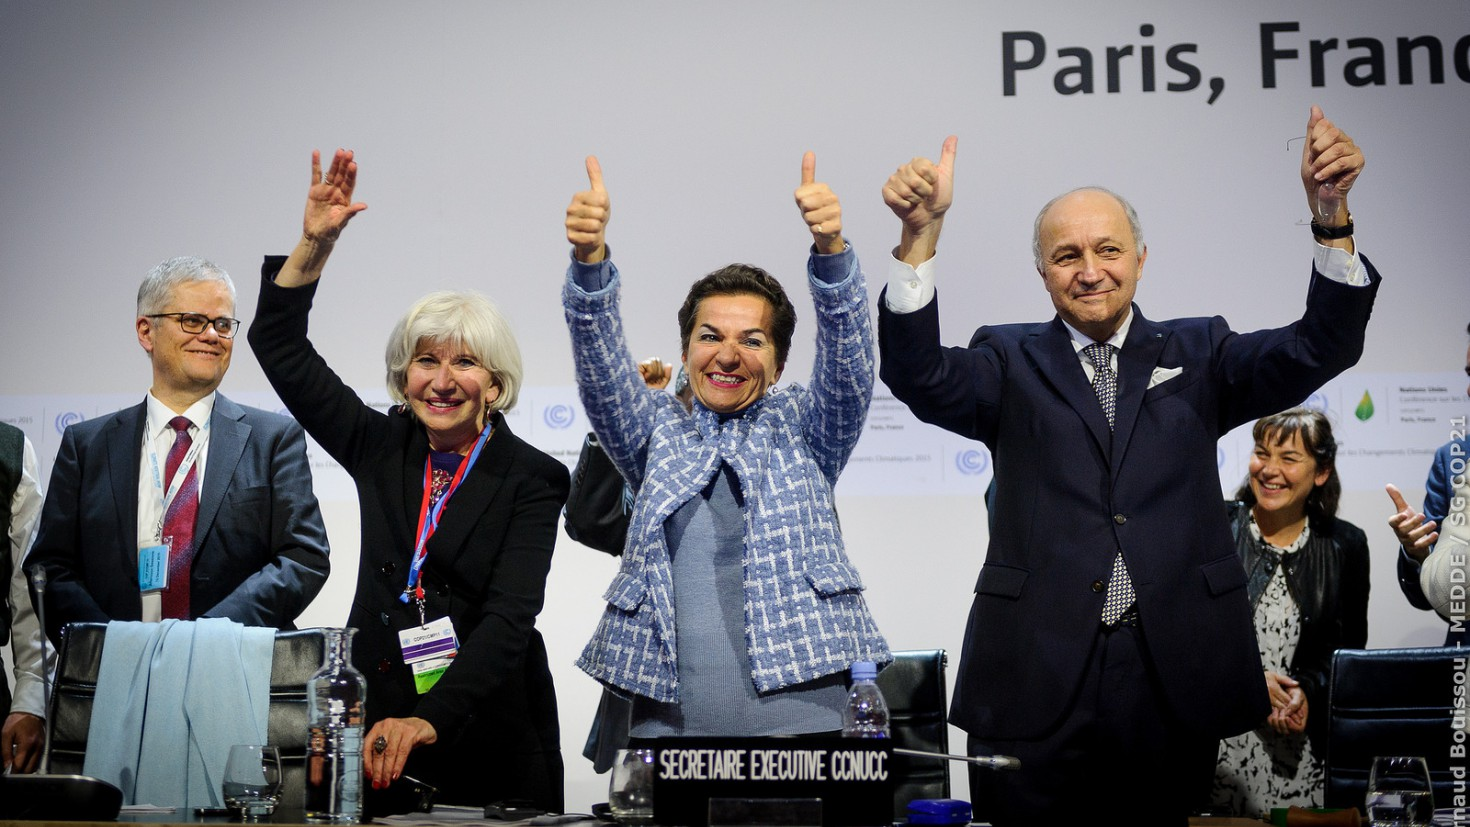 thumbs up for 1,5. celebrations in the plenary at the adoption of the climate deal in paris 2015. foto: cop21 / flickr